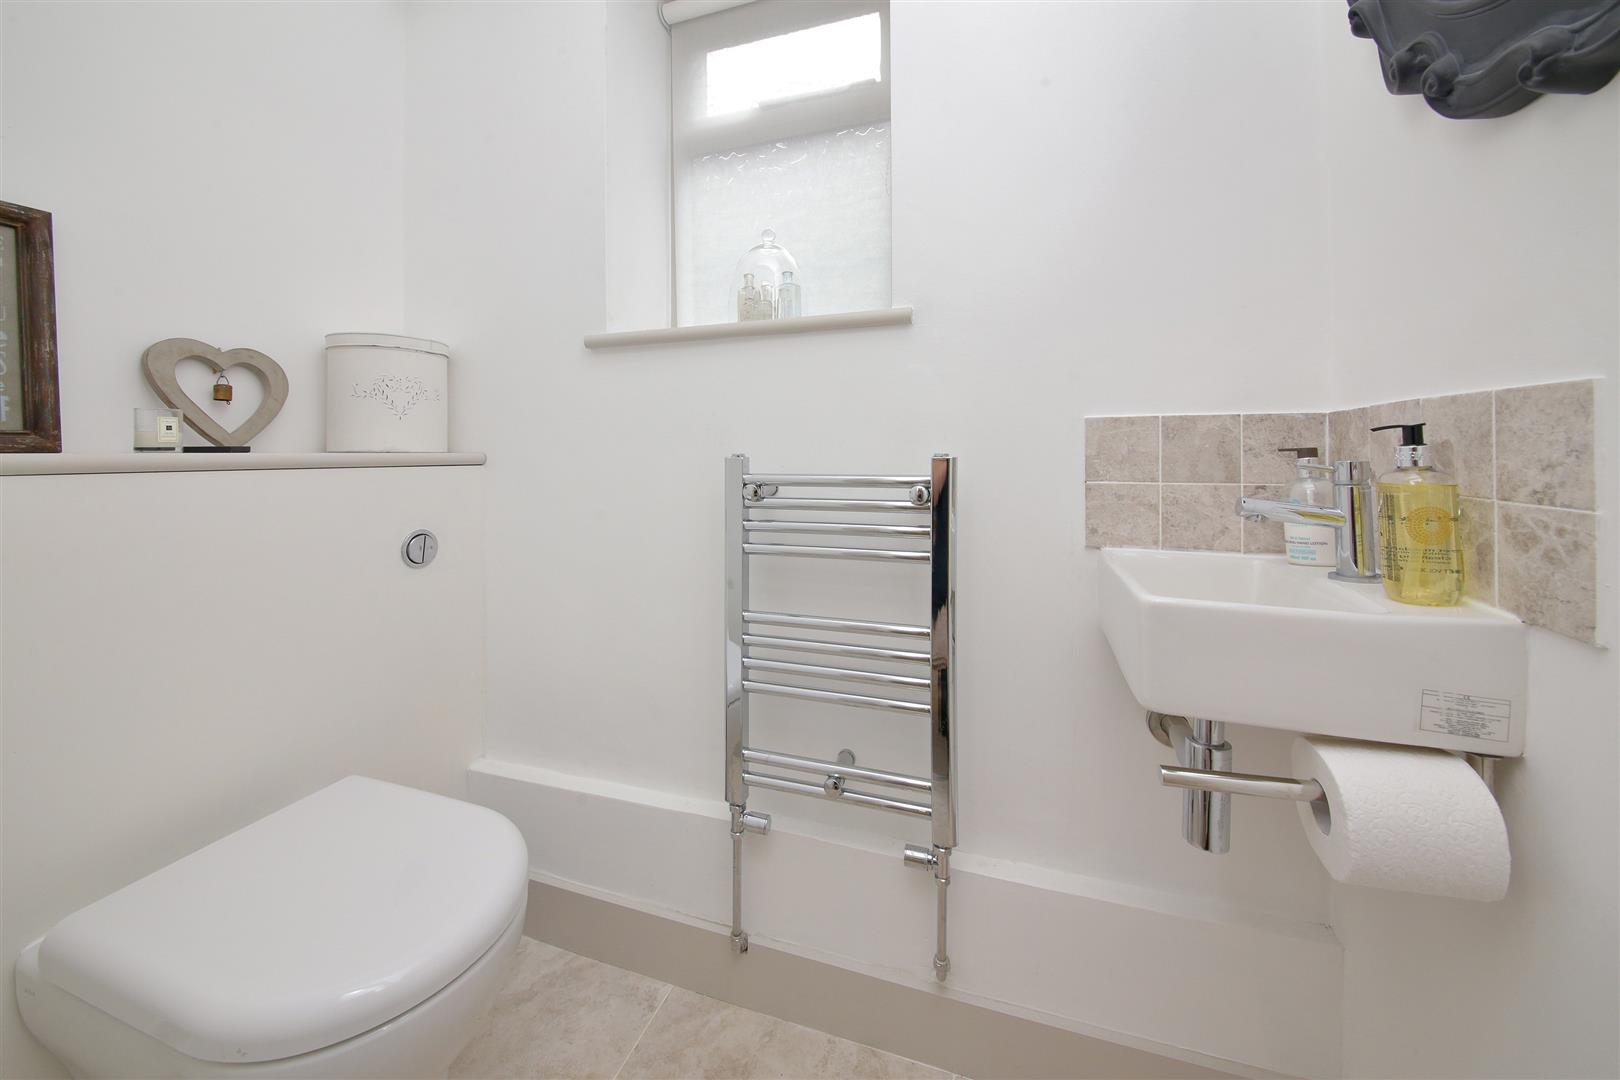 5 bed to rent in Letchmore Heath - (Property Image 7)